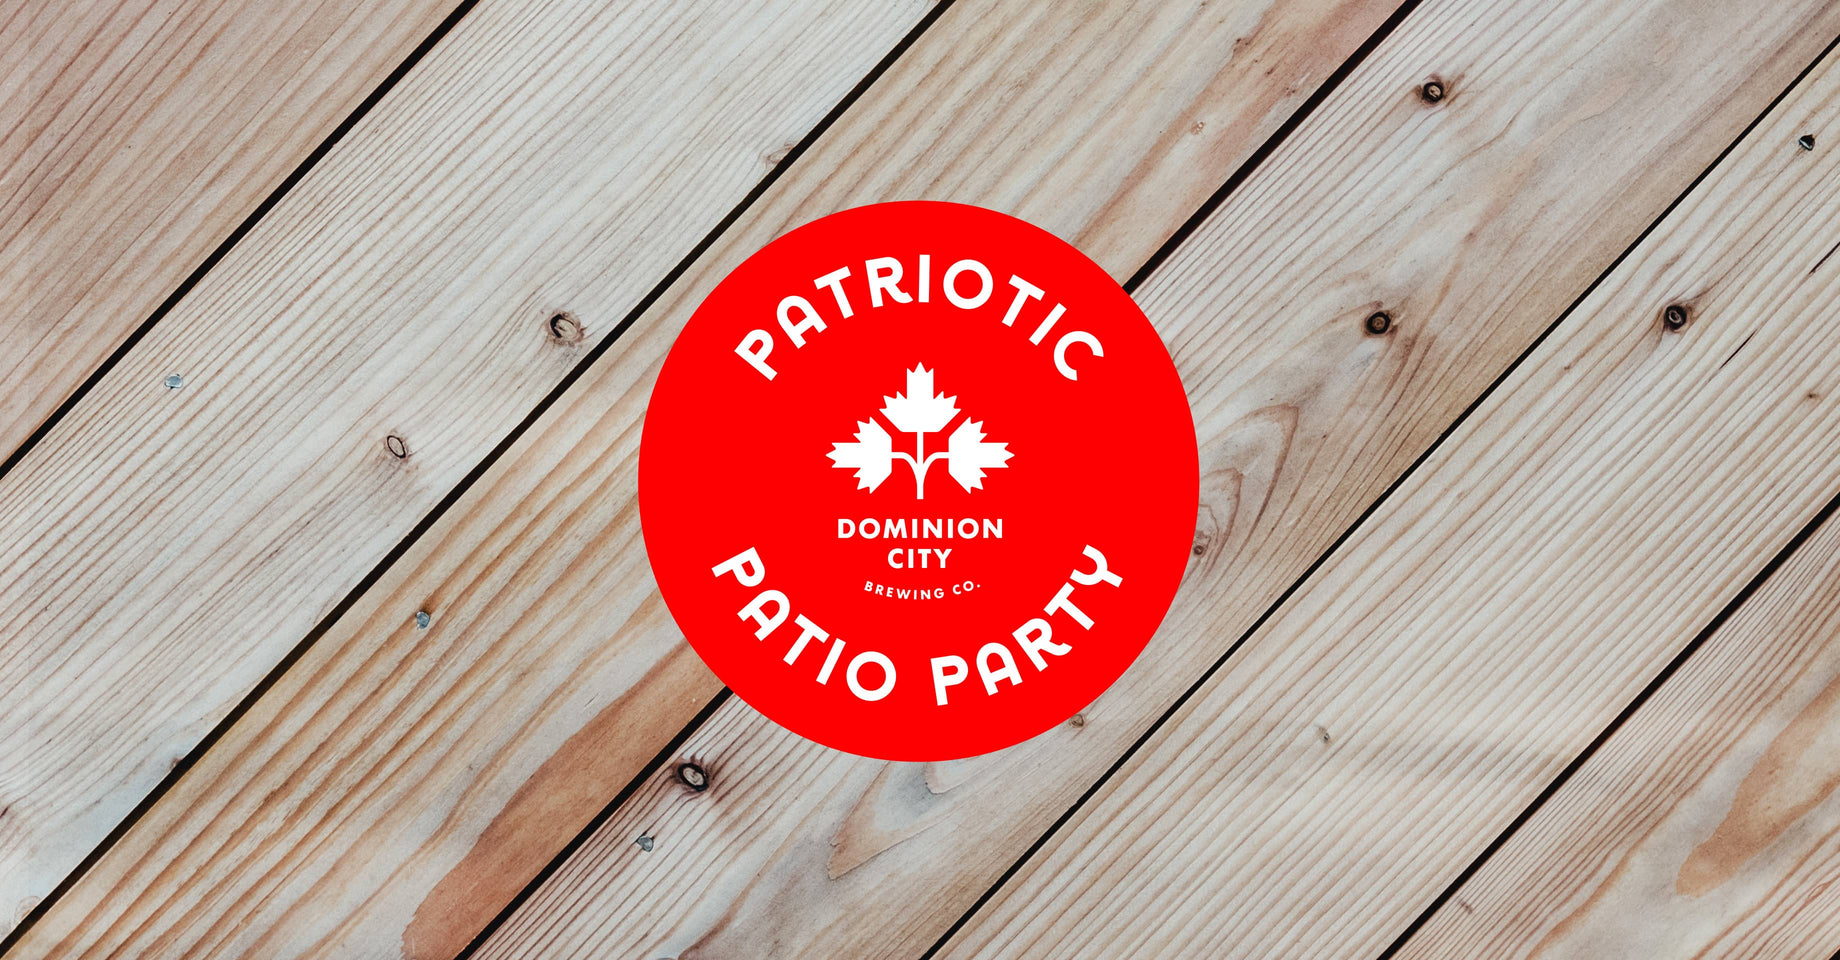 Patriotic Patio Party!